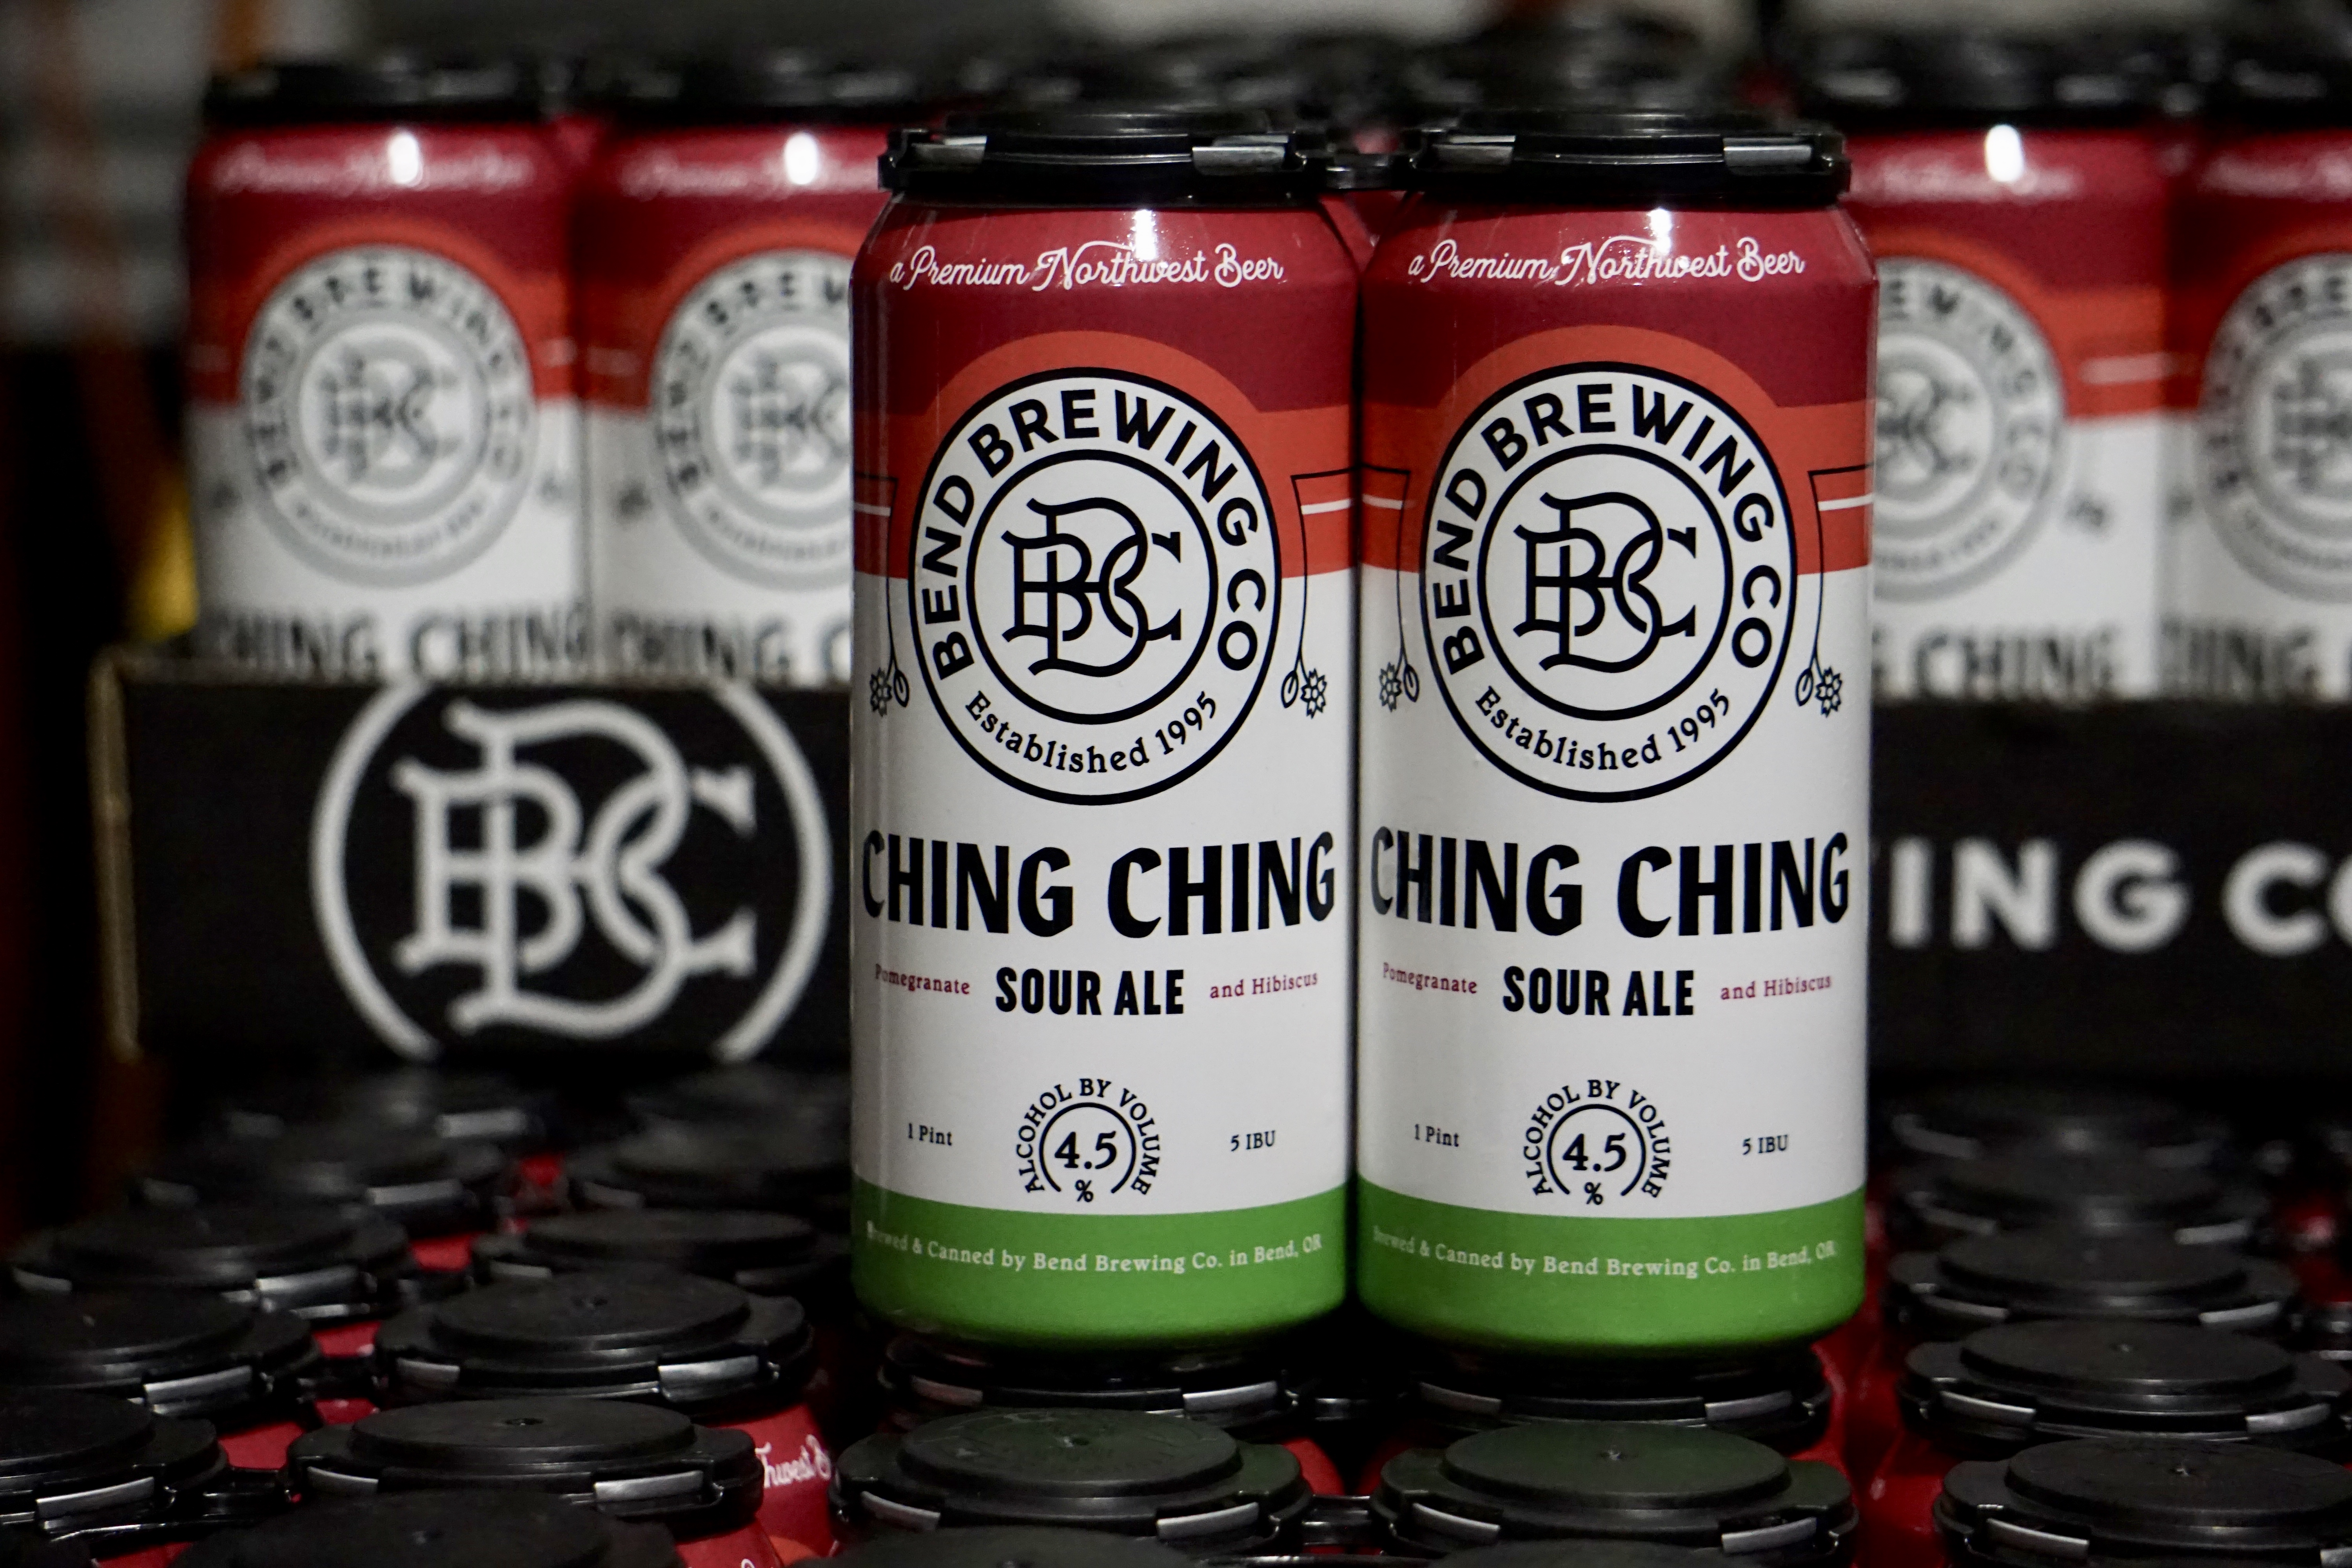 image of Ching Ching cans courtesy of Bend Brewing Co.